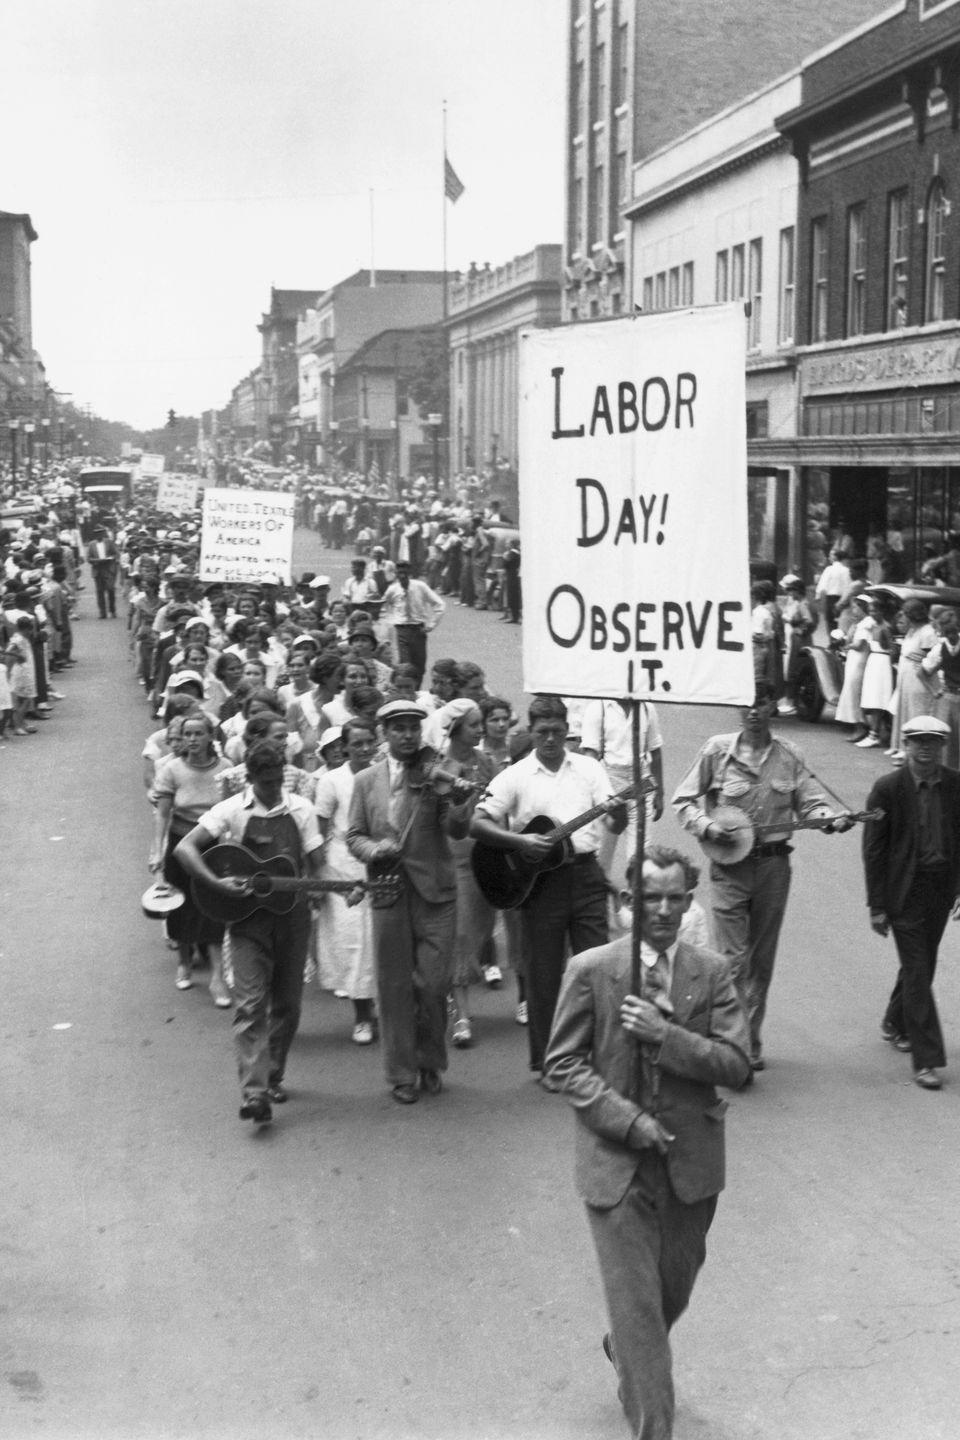 """<p>It was a parade planned by the Central Labor Union in New York, according to the <a href=""""https://www.dol.gov/general/laborday/history"""" rel=""""nofollow noopener"""" target=""""_blank"""" data-ylk=""""slk:U.S. Department of Labor"""" class=""""link rapid-noclick-resp"""">U.S. Department of Labor</a>. Oregon, however, was the first state to pass a law making Labor Day a holiday in 1887.</p><p><strong>RELATED: </strong><a href=""""https://www.goodhousekeeping.com/life/money/a28073241/best-labor-day-sales-2019/"""" rel=""""nofollow noopener"""" target=""""_blank"""" data-ylk=""""slk:The Best Labor Day Sales to Help You End Summer With a Bang"""" class=""""link rapid-noclick-resp"""">The Best Labor Day Sales to Help You End Summer With a Bang</a></p>"""